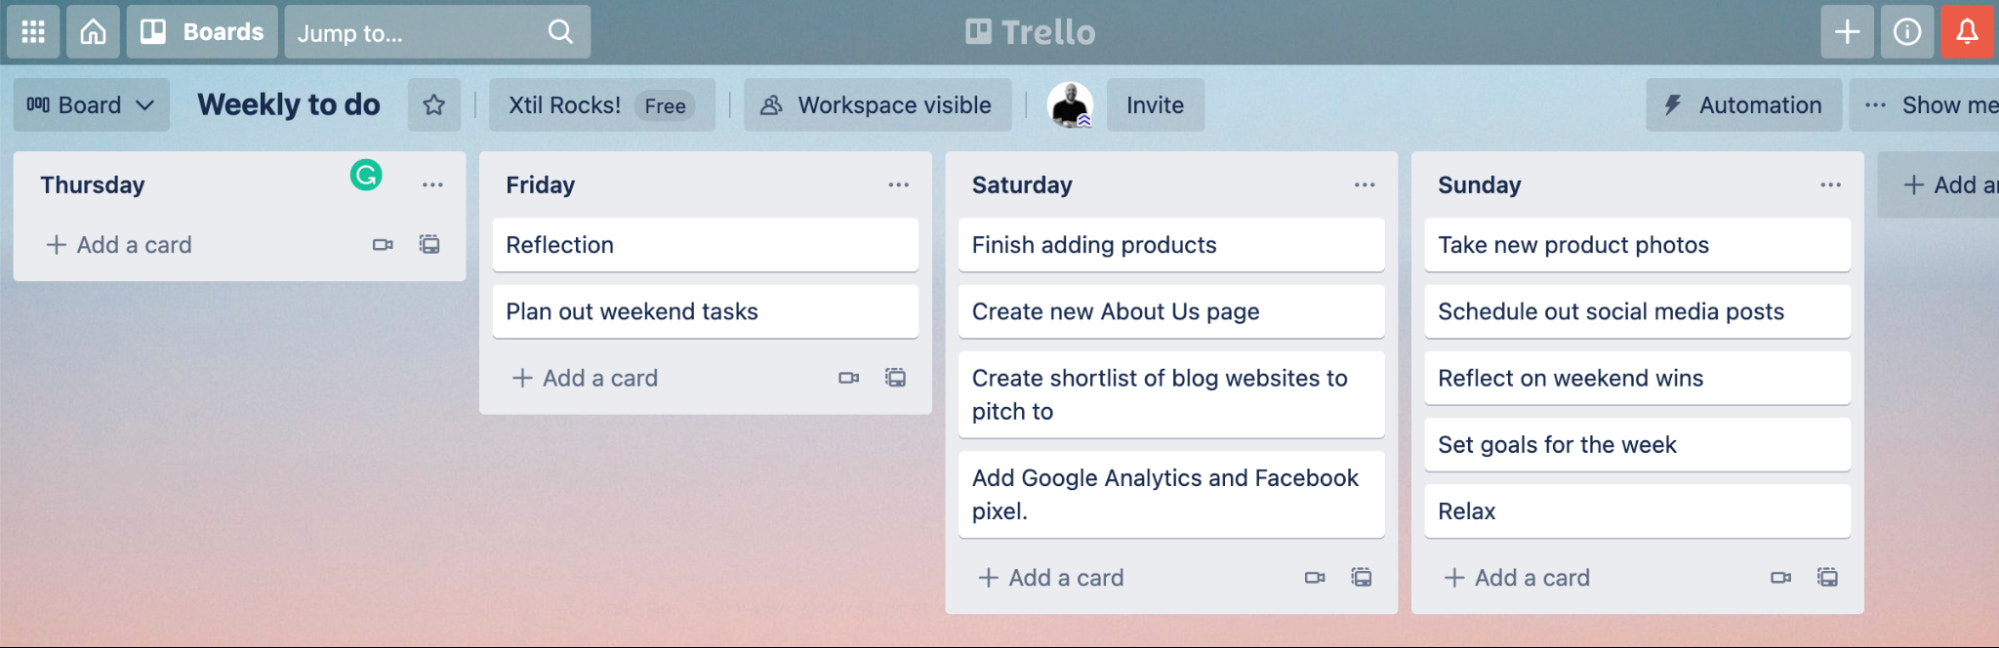 planning your weekend to start a part time business idea in Trello